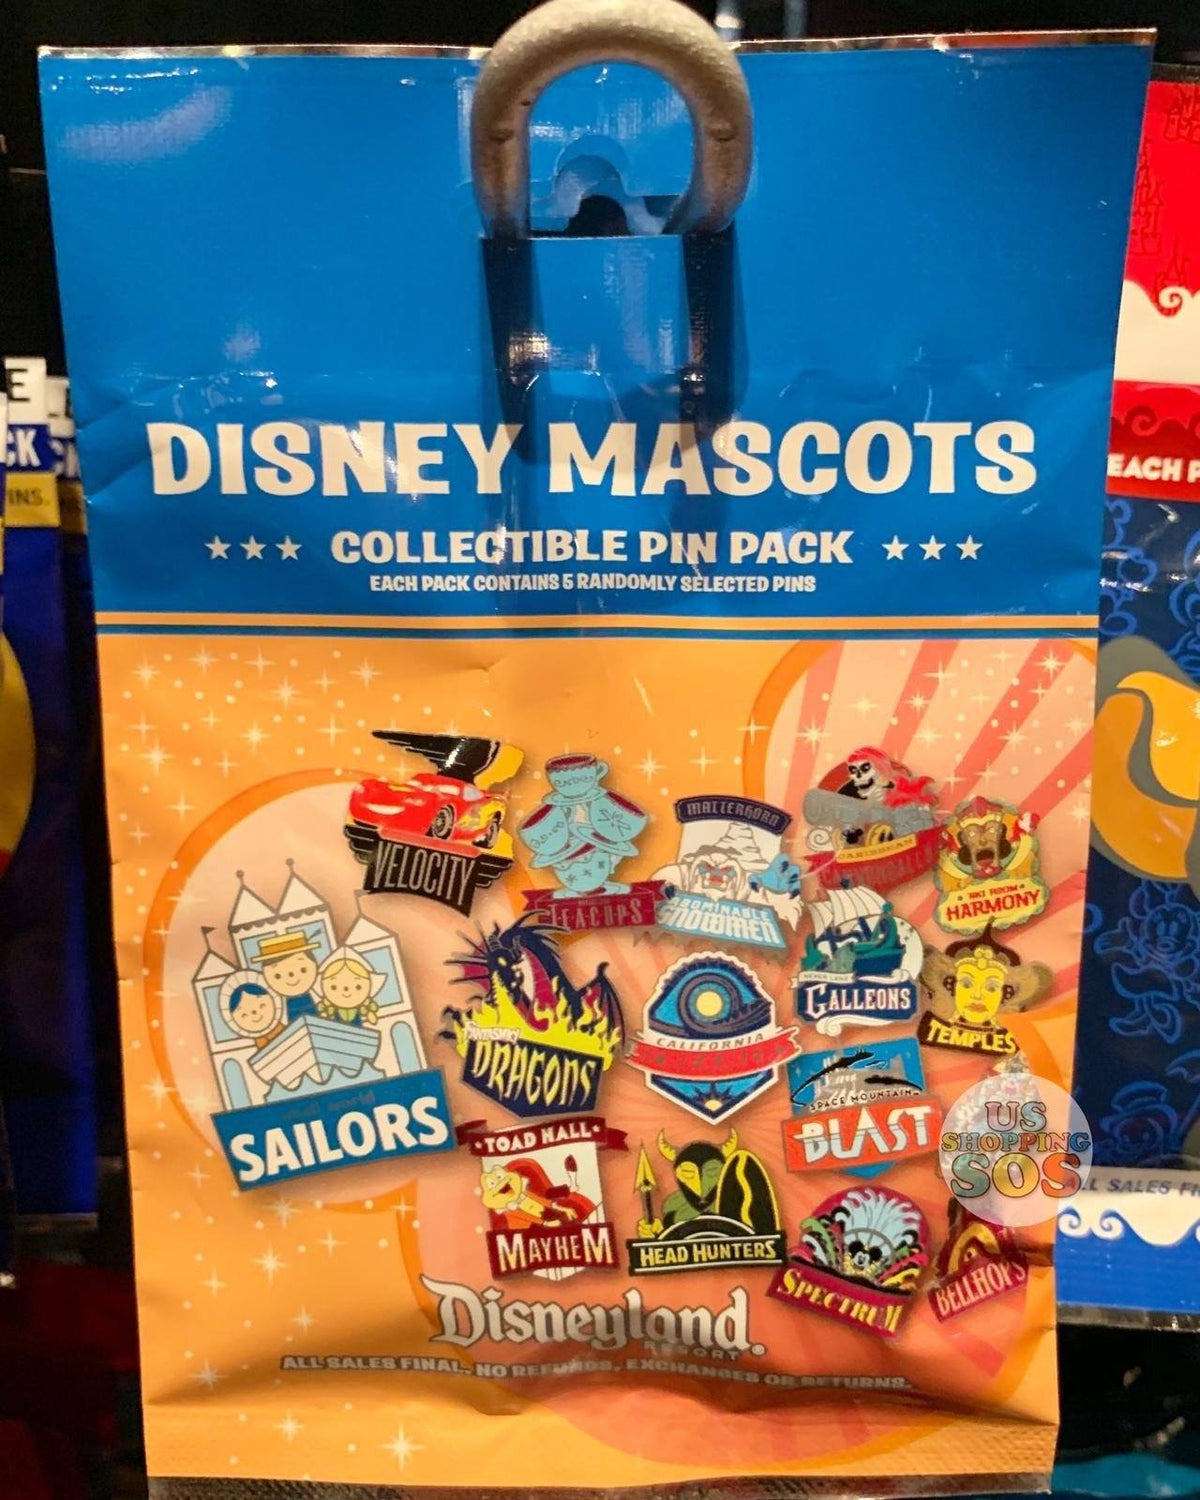 DLR   Mystery Collectible Pin Pack   Disney Mascots